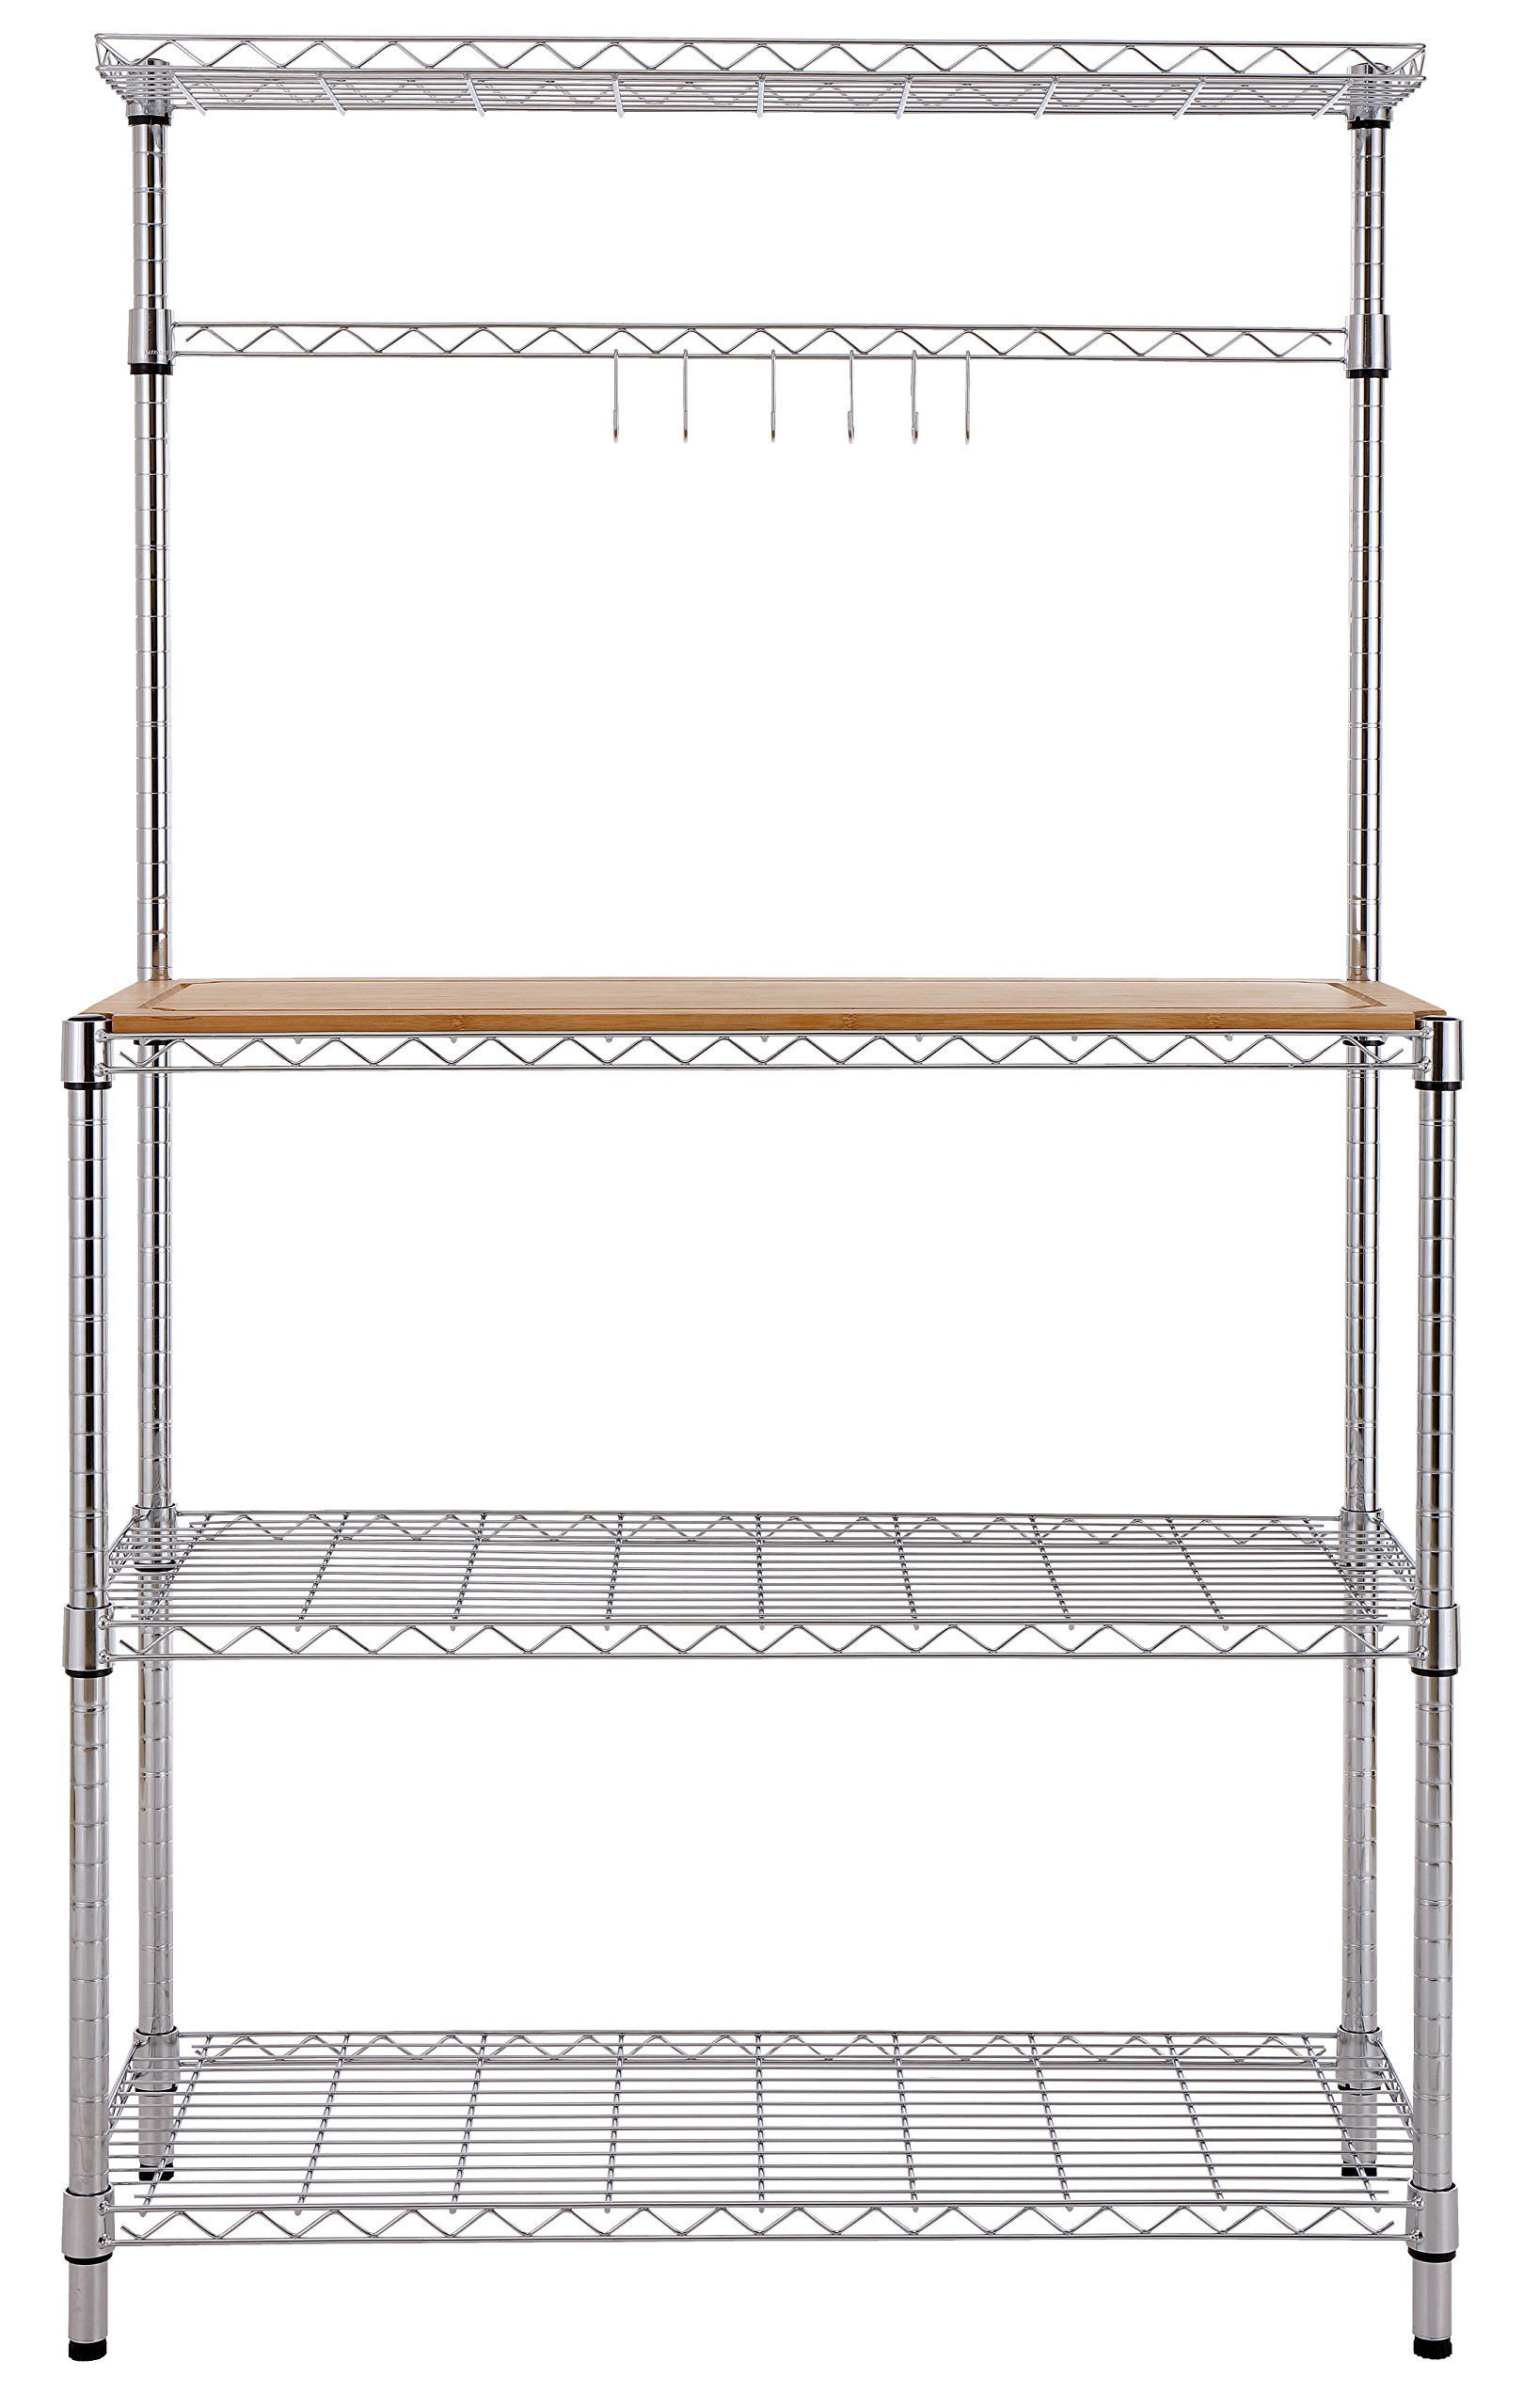 Finnhomy 14x36x61 4-Tiers Adjustable Kitchen Bakers Rack Kitchen Cart Microwave Stand with Chrome Shelves and Thicken Bamboo Cutting Board by Finnhomy (Image #4)